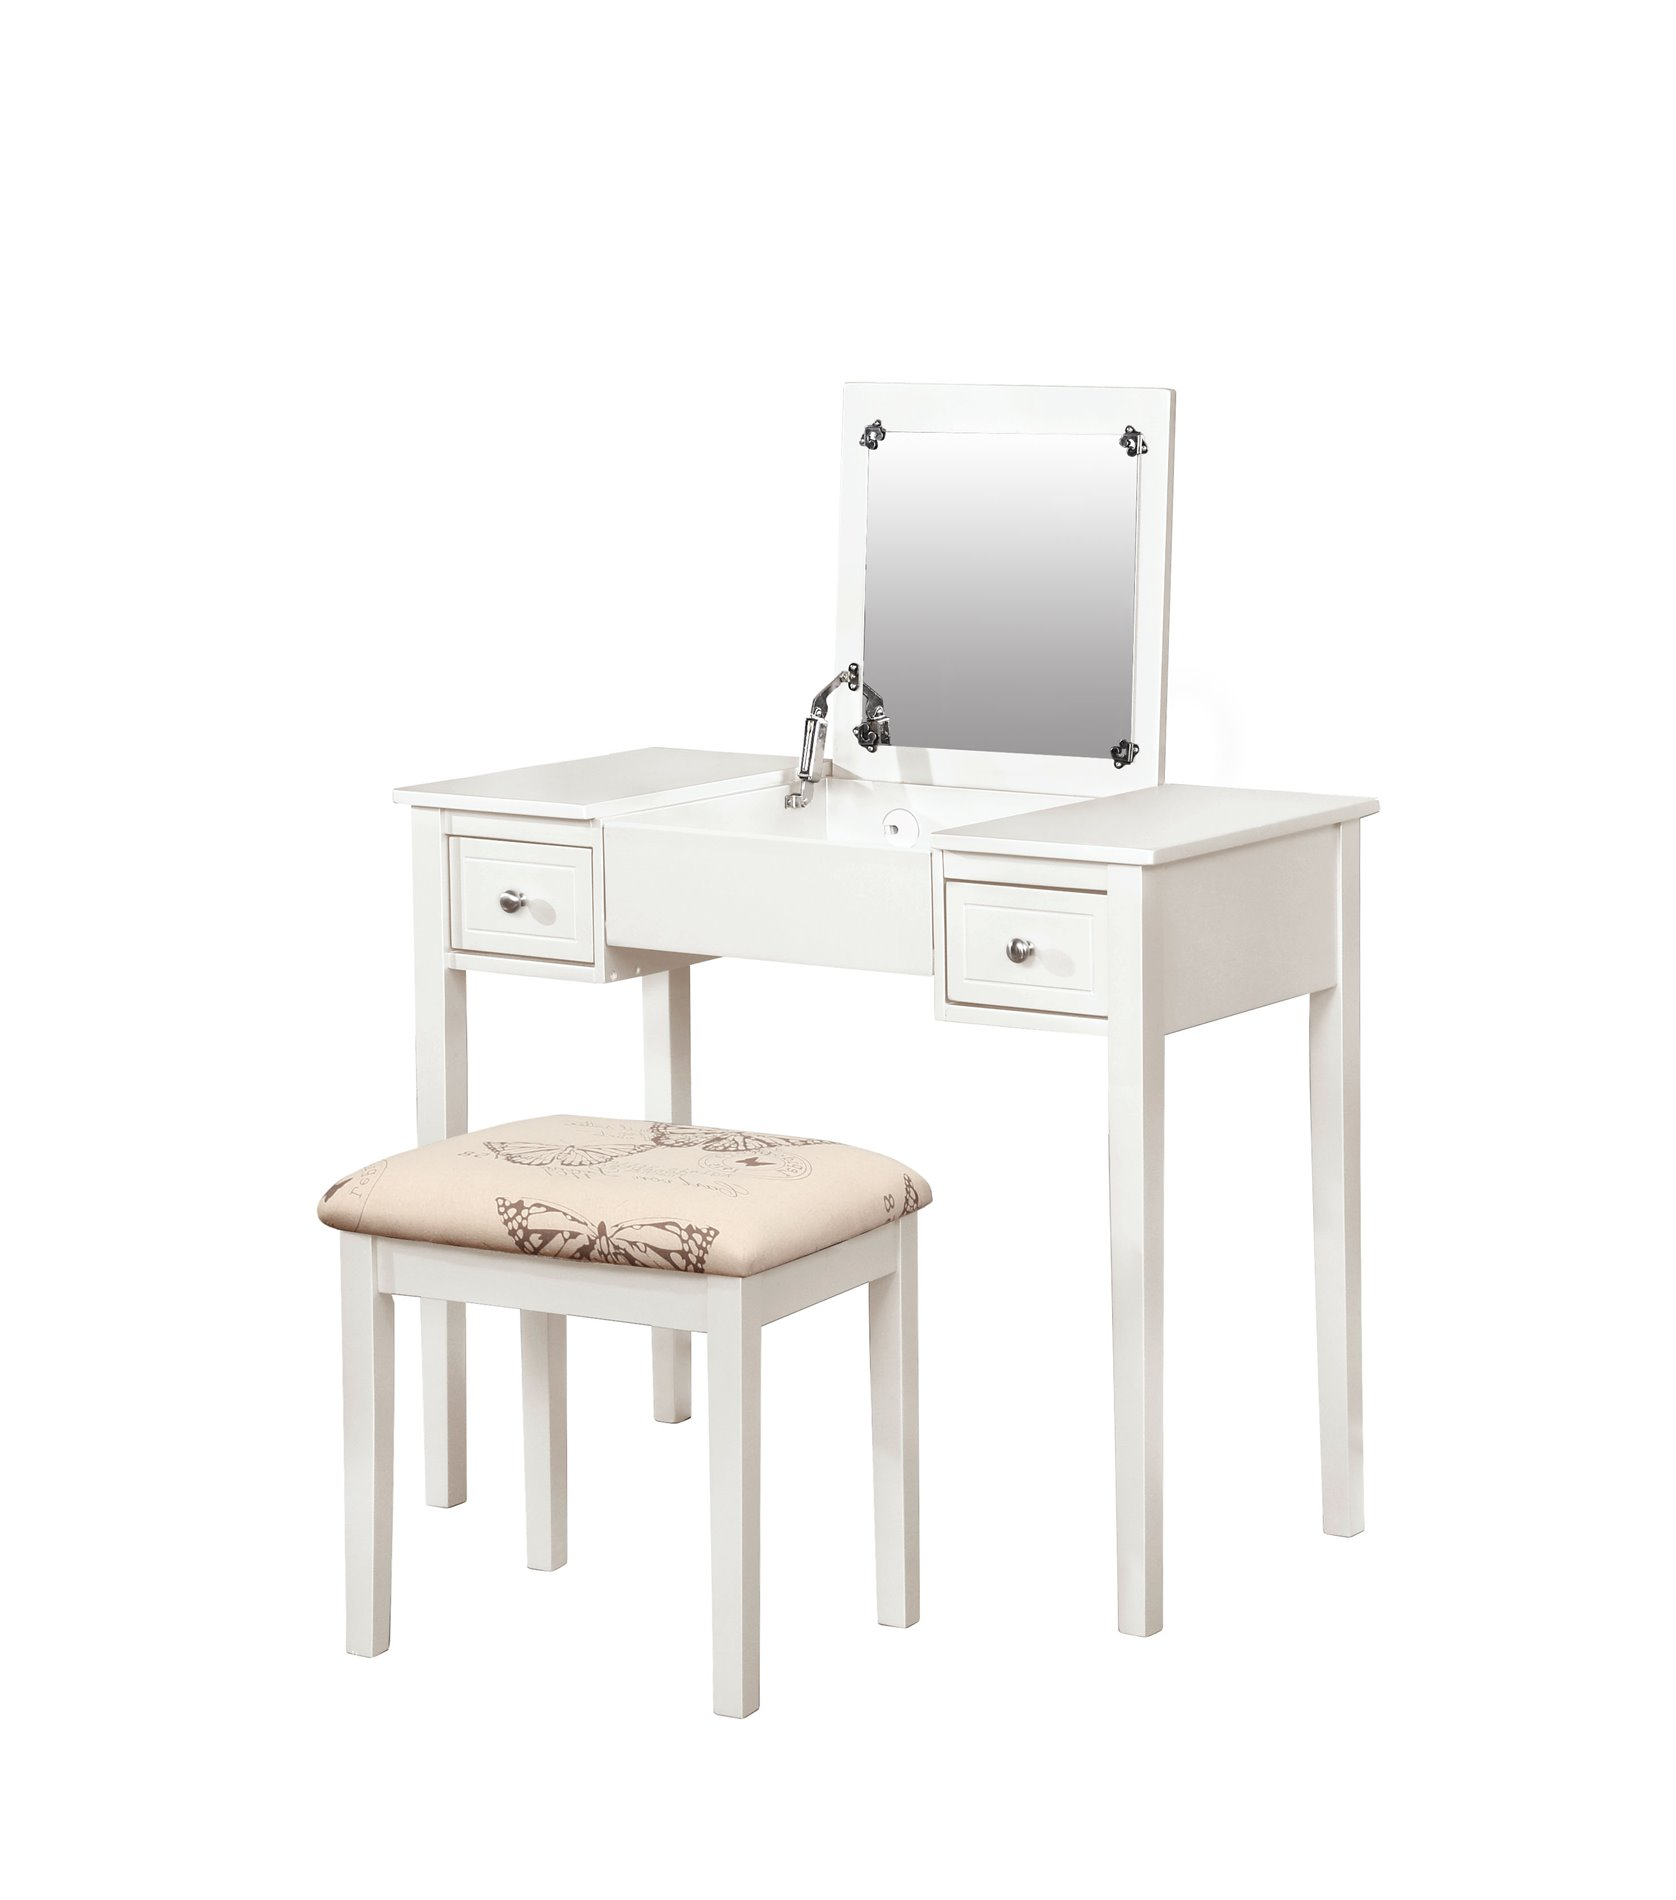 Linon Home Decor 98135WHTX-01-KD-U VANITY SET WHITE